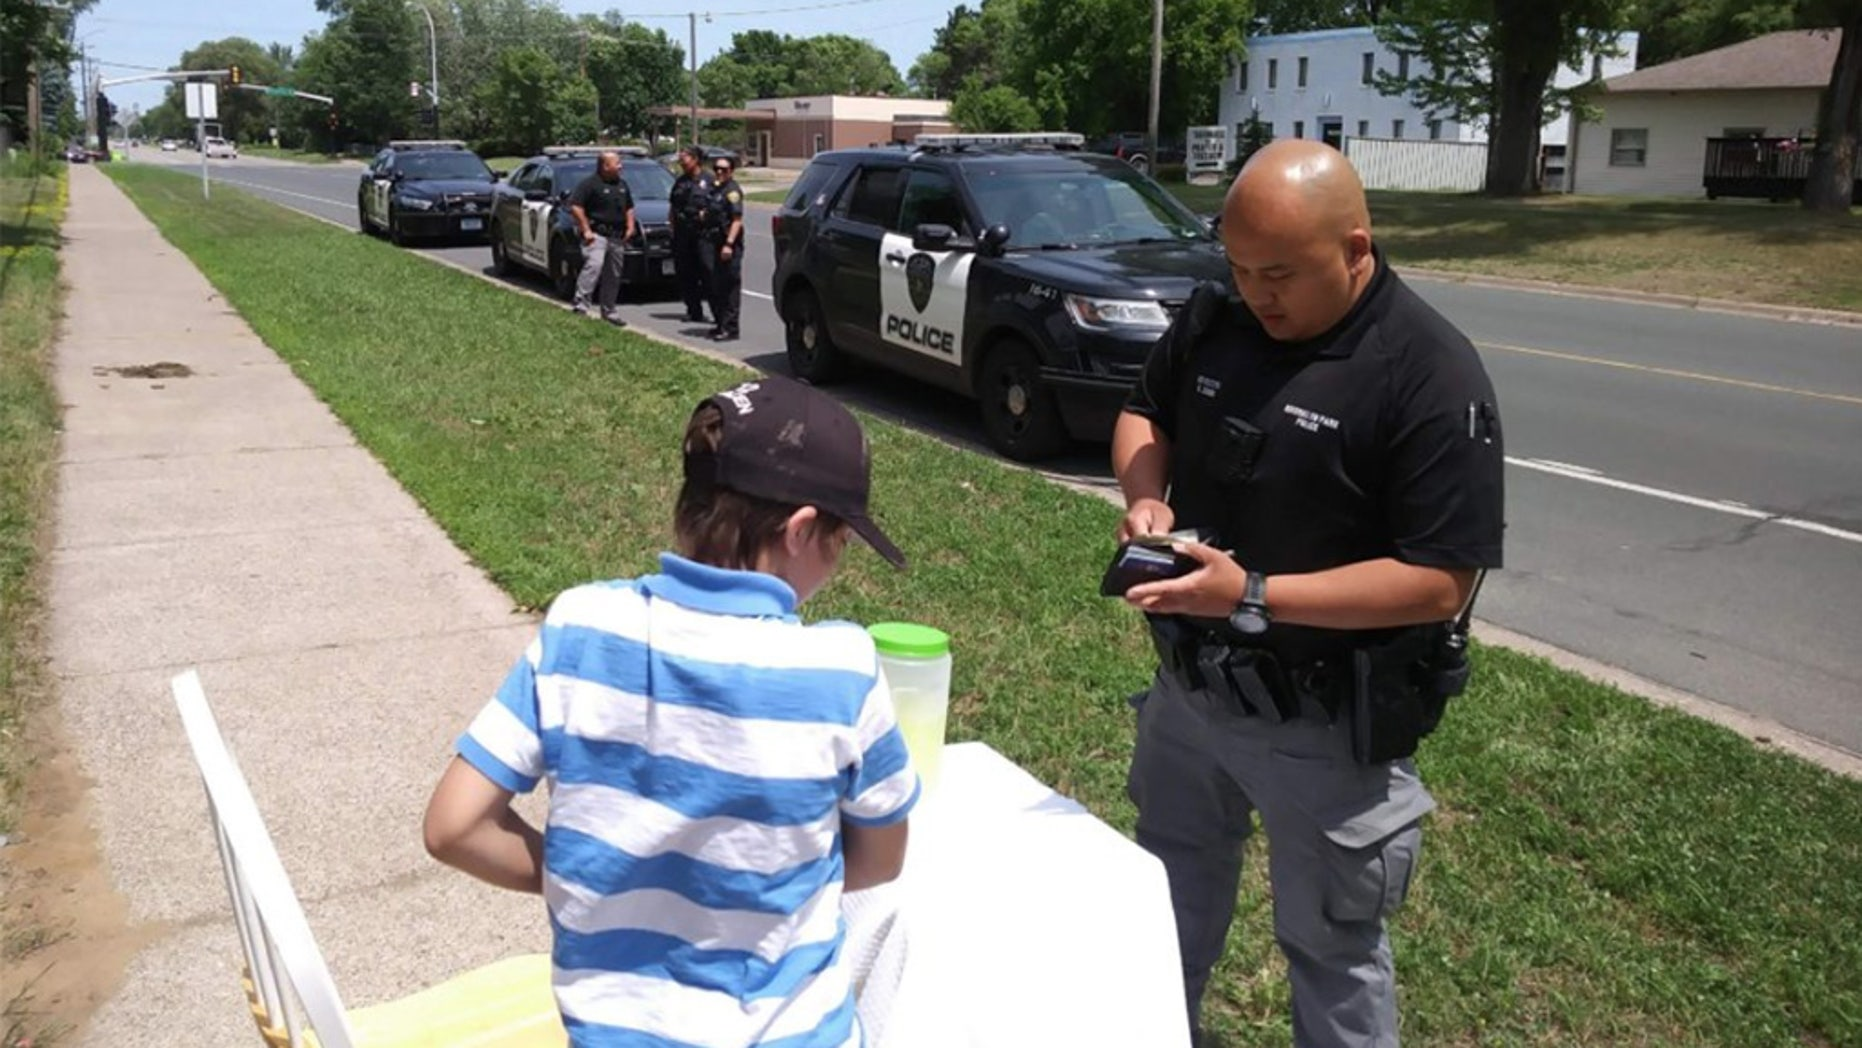 A group of Brooklyn Park police officers saved the day after a 9-year-old's lemonade stand was robbed by two older kids.